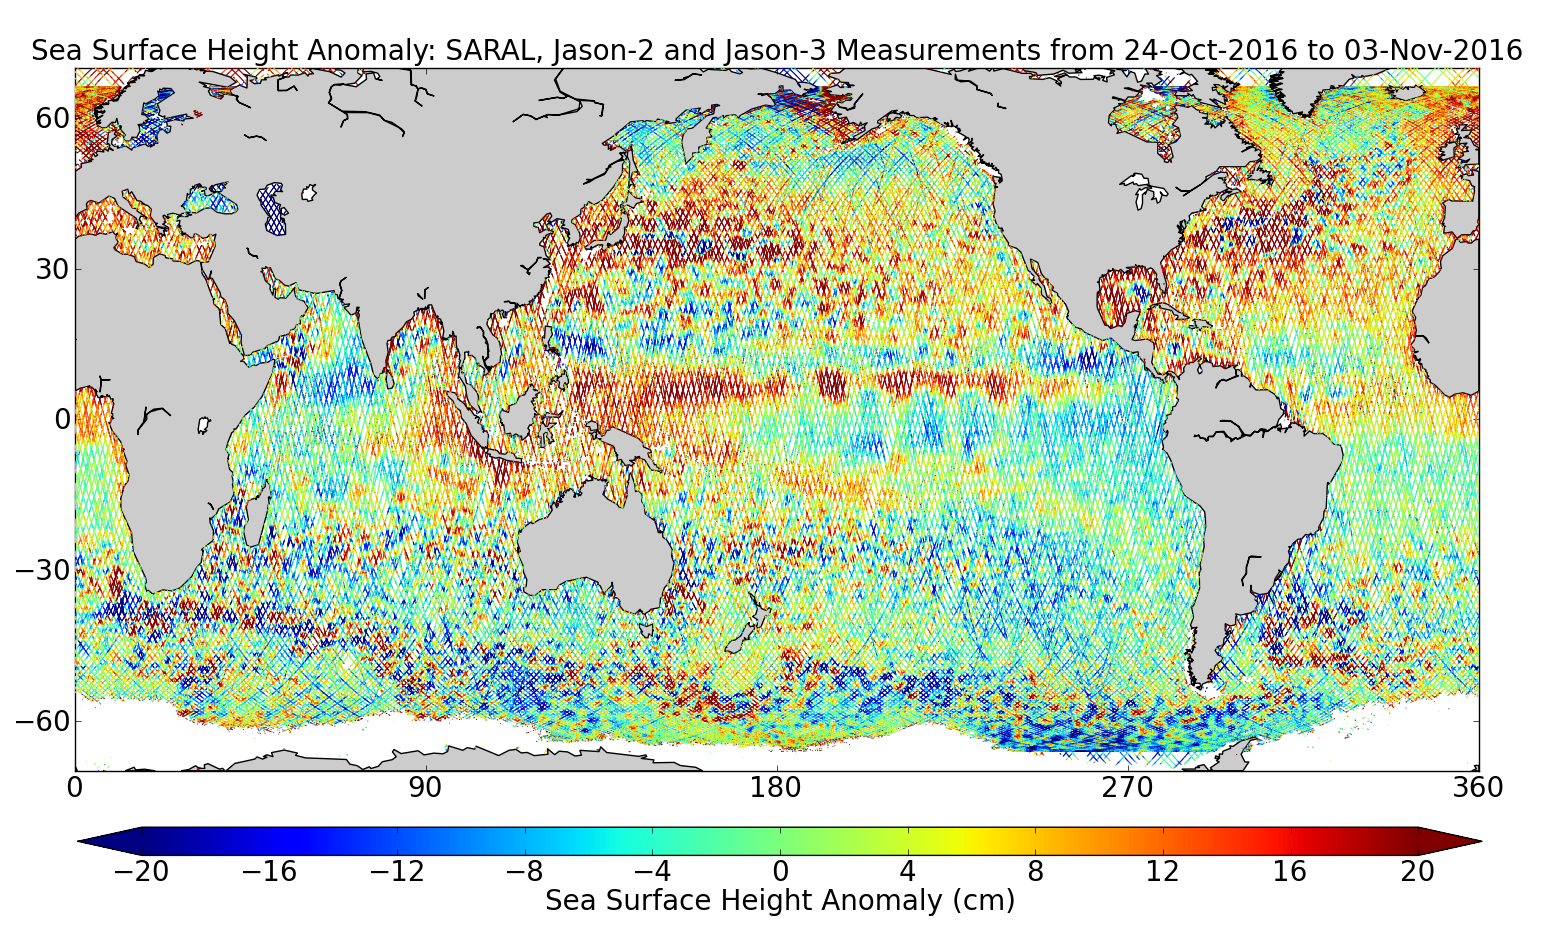 Sea Surface Height Anomaly: SARAL, Jason-2 and Jason-3 Measurements from 24-Oct-2016 to 03-Nov-2016